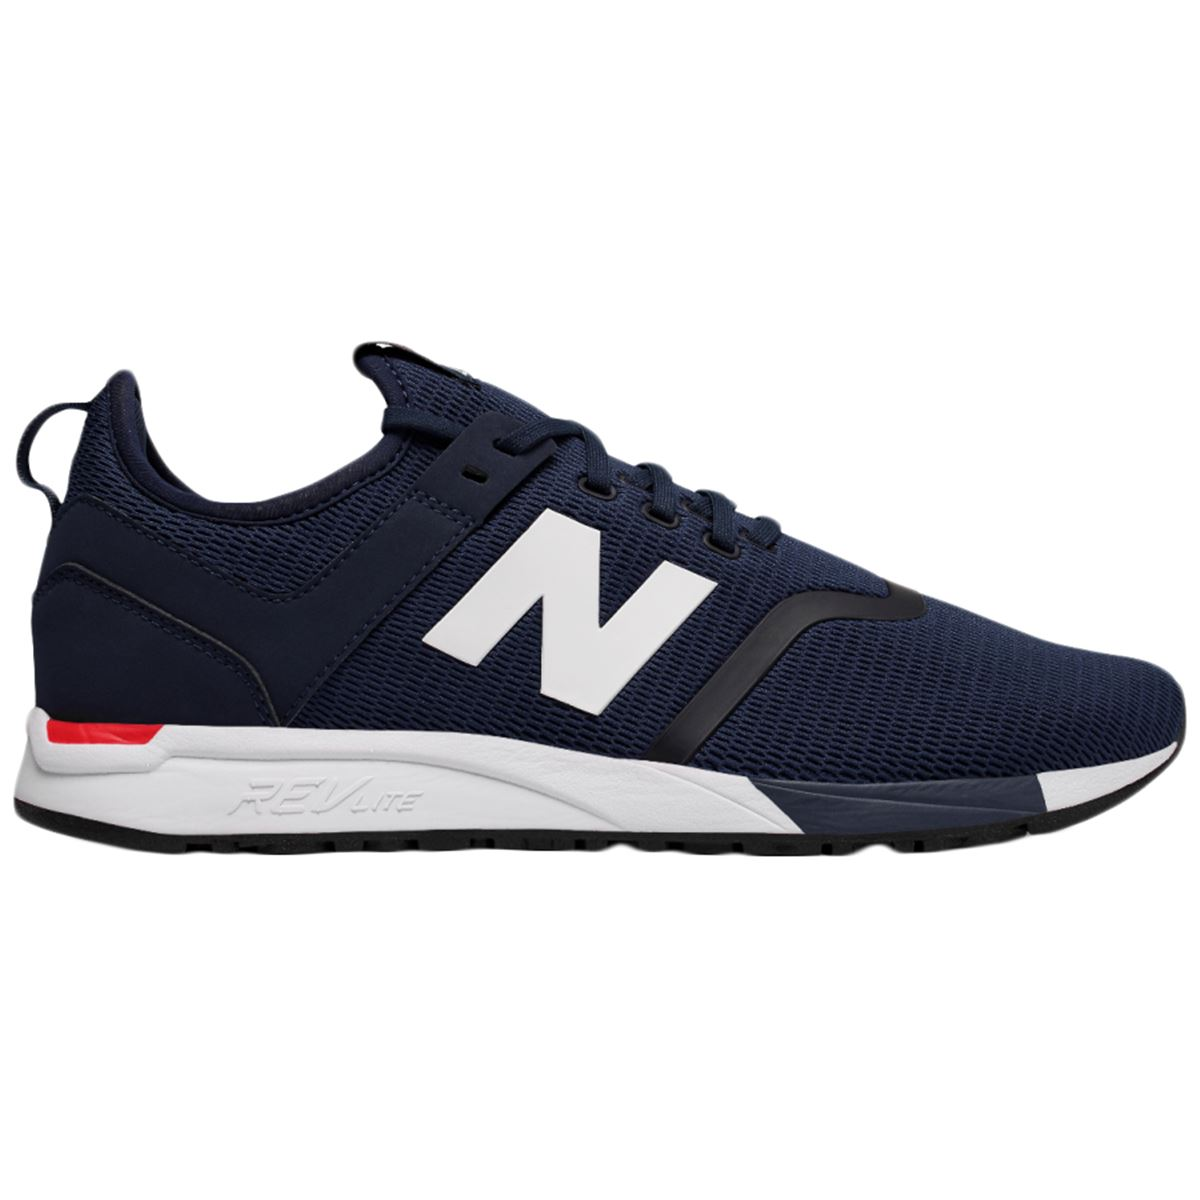 New New New Balance MRL247 Mesh Slip-On Low-Top Running Shoes Sneakers Mens Trainers cd1928